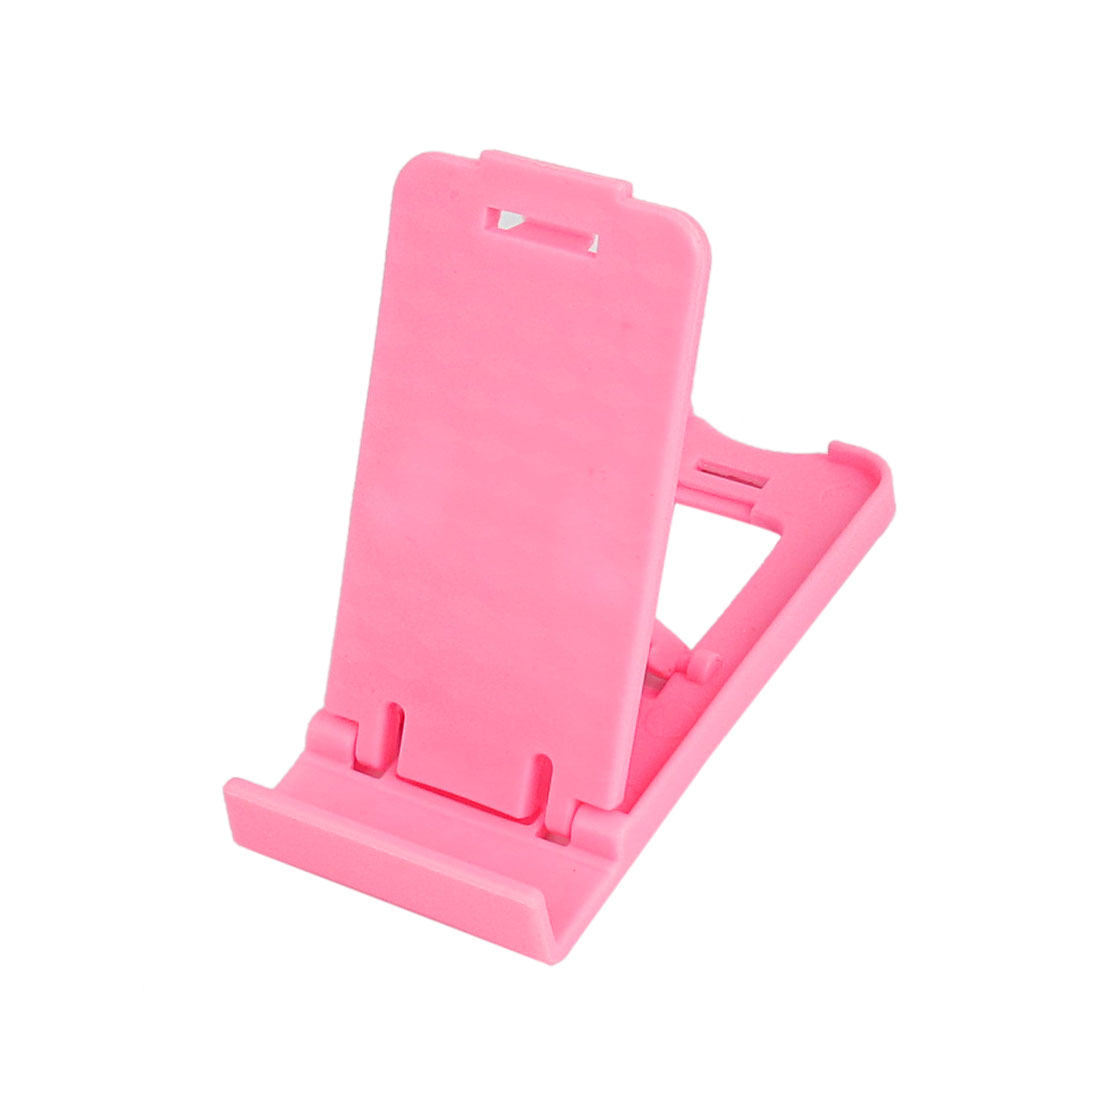 Pink Plastic Folding Desk Desktop Stand Holder Stander Support for MP4 iPad iPhone Cell Phone